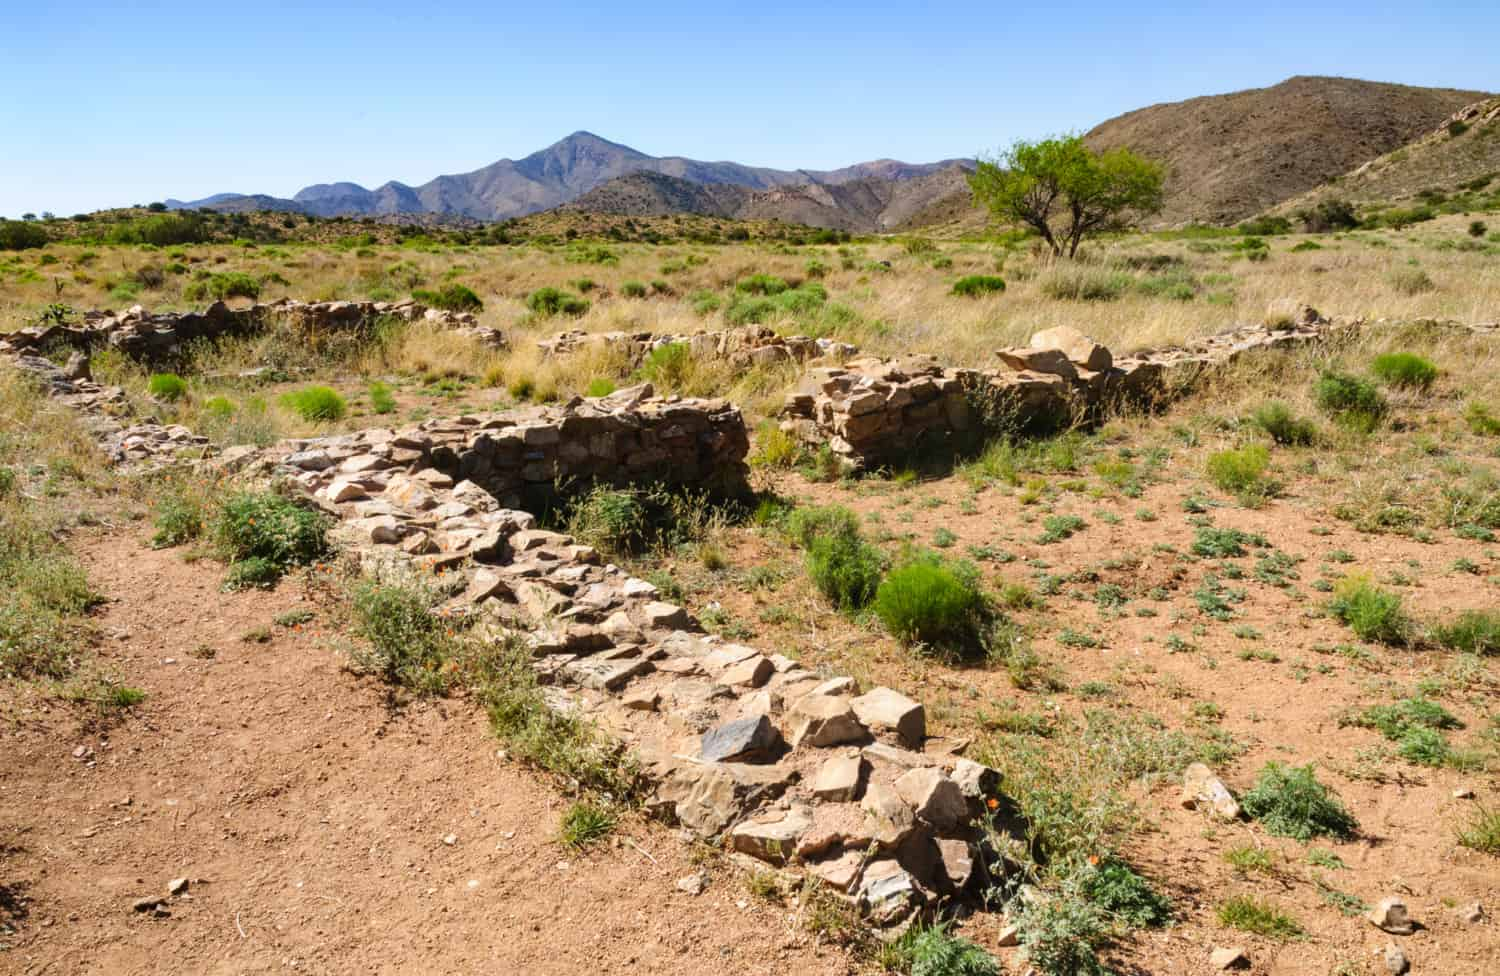 Landscape at Fort Bowie National Historic Site in Arizona